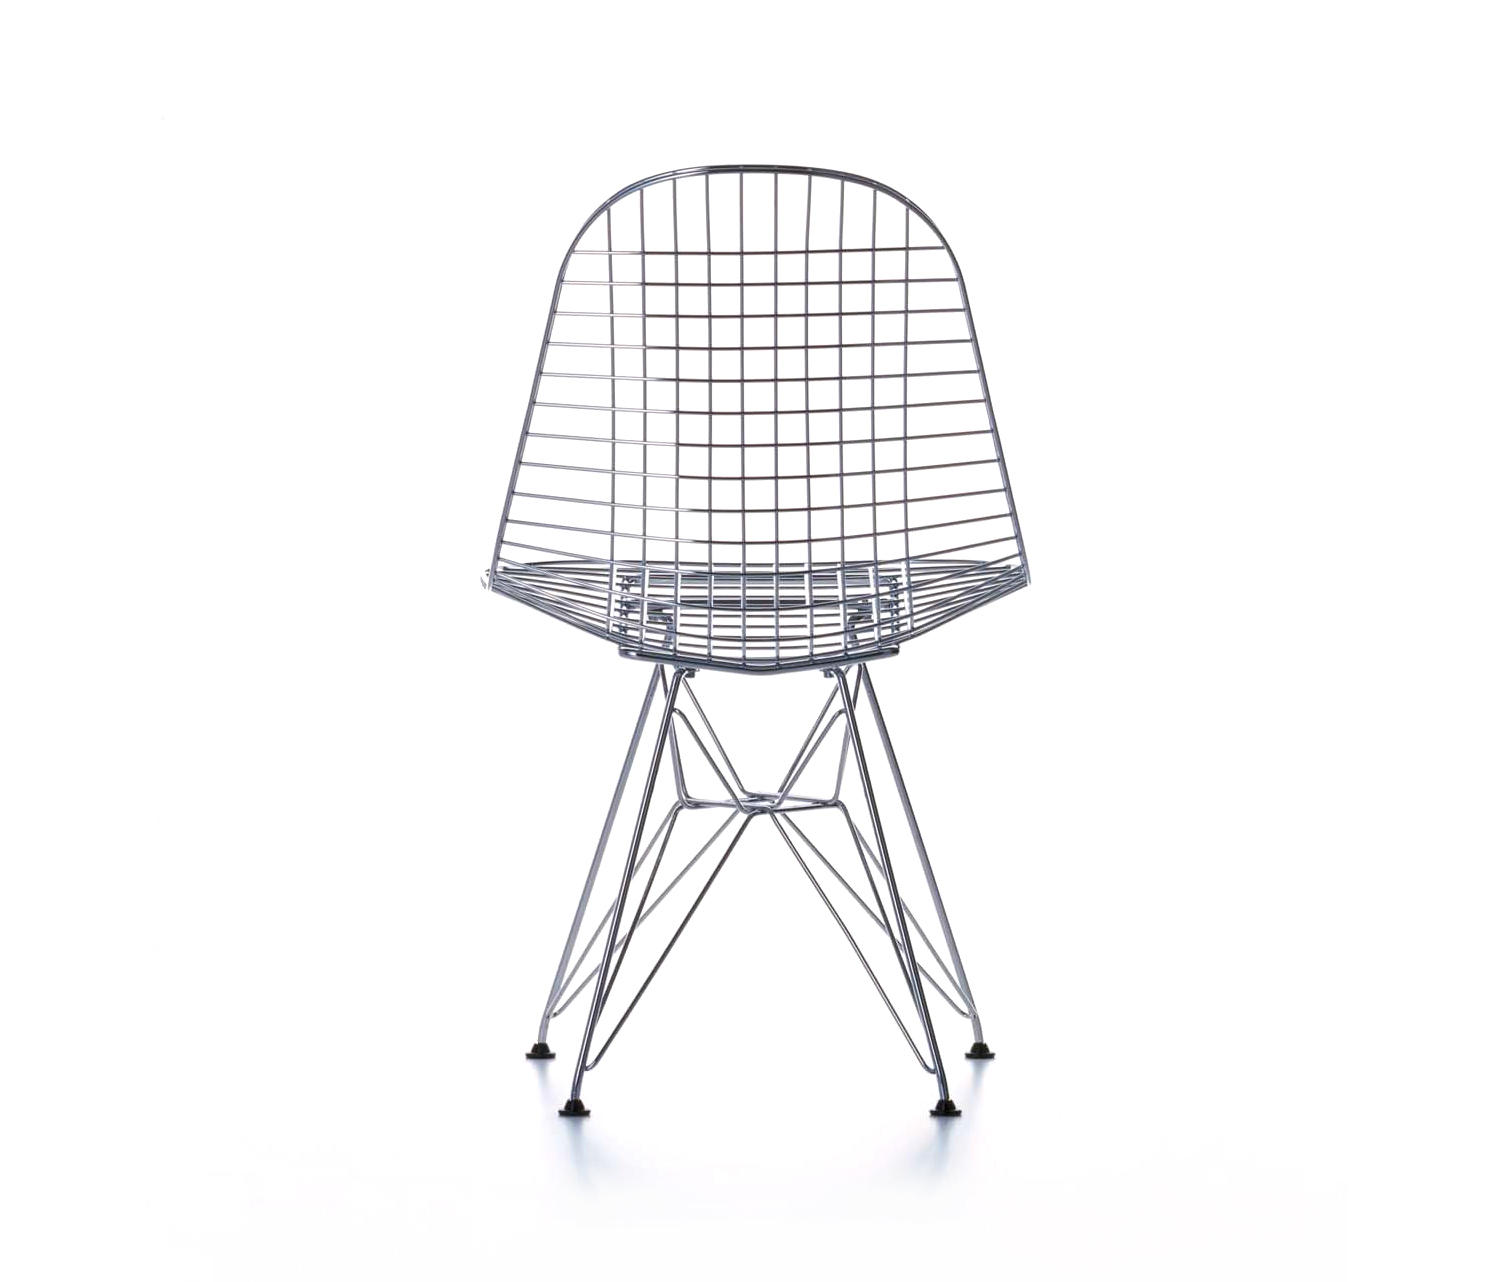 WIRE CHAIR DKR Multipurpose chairs from Vitra